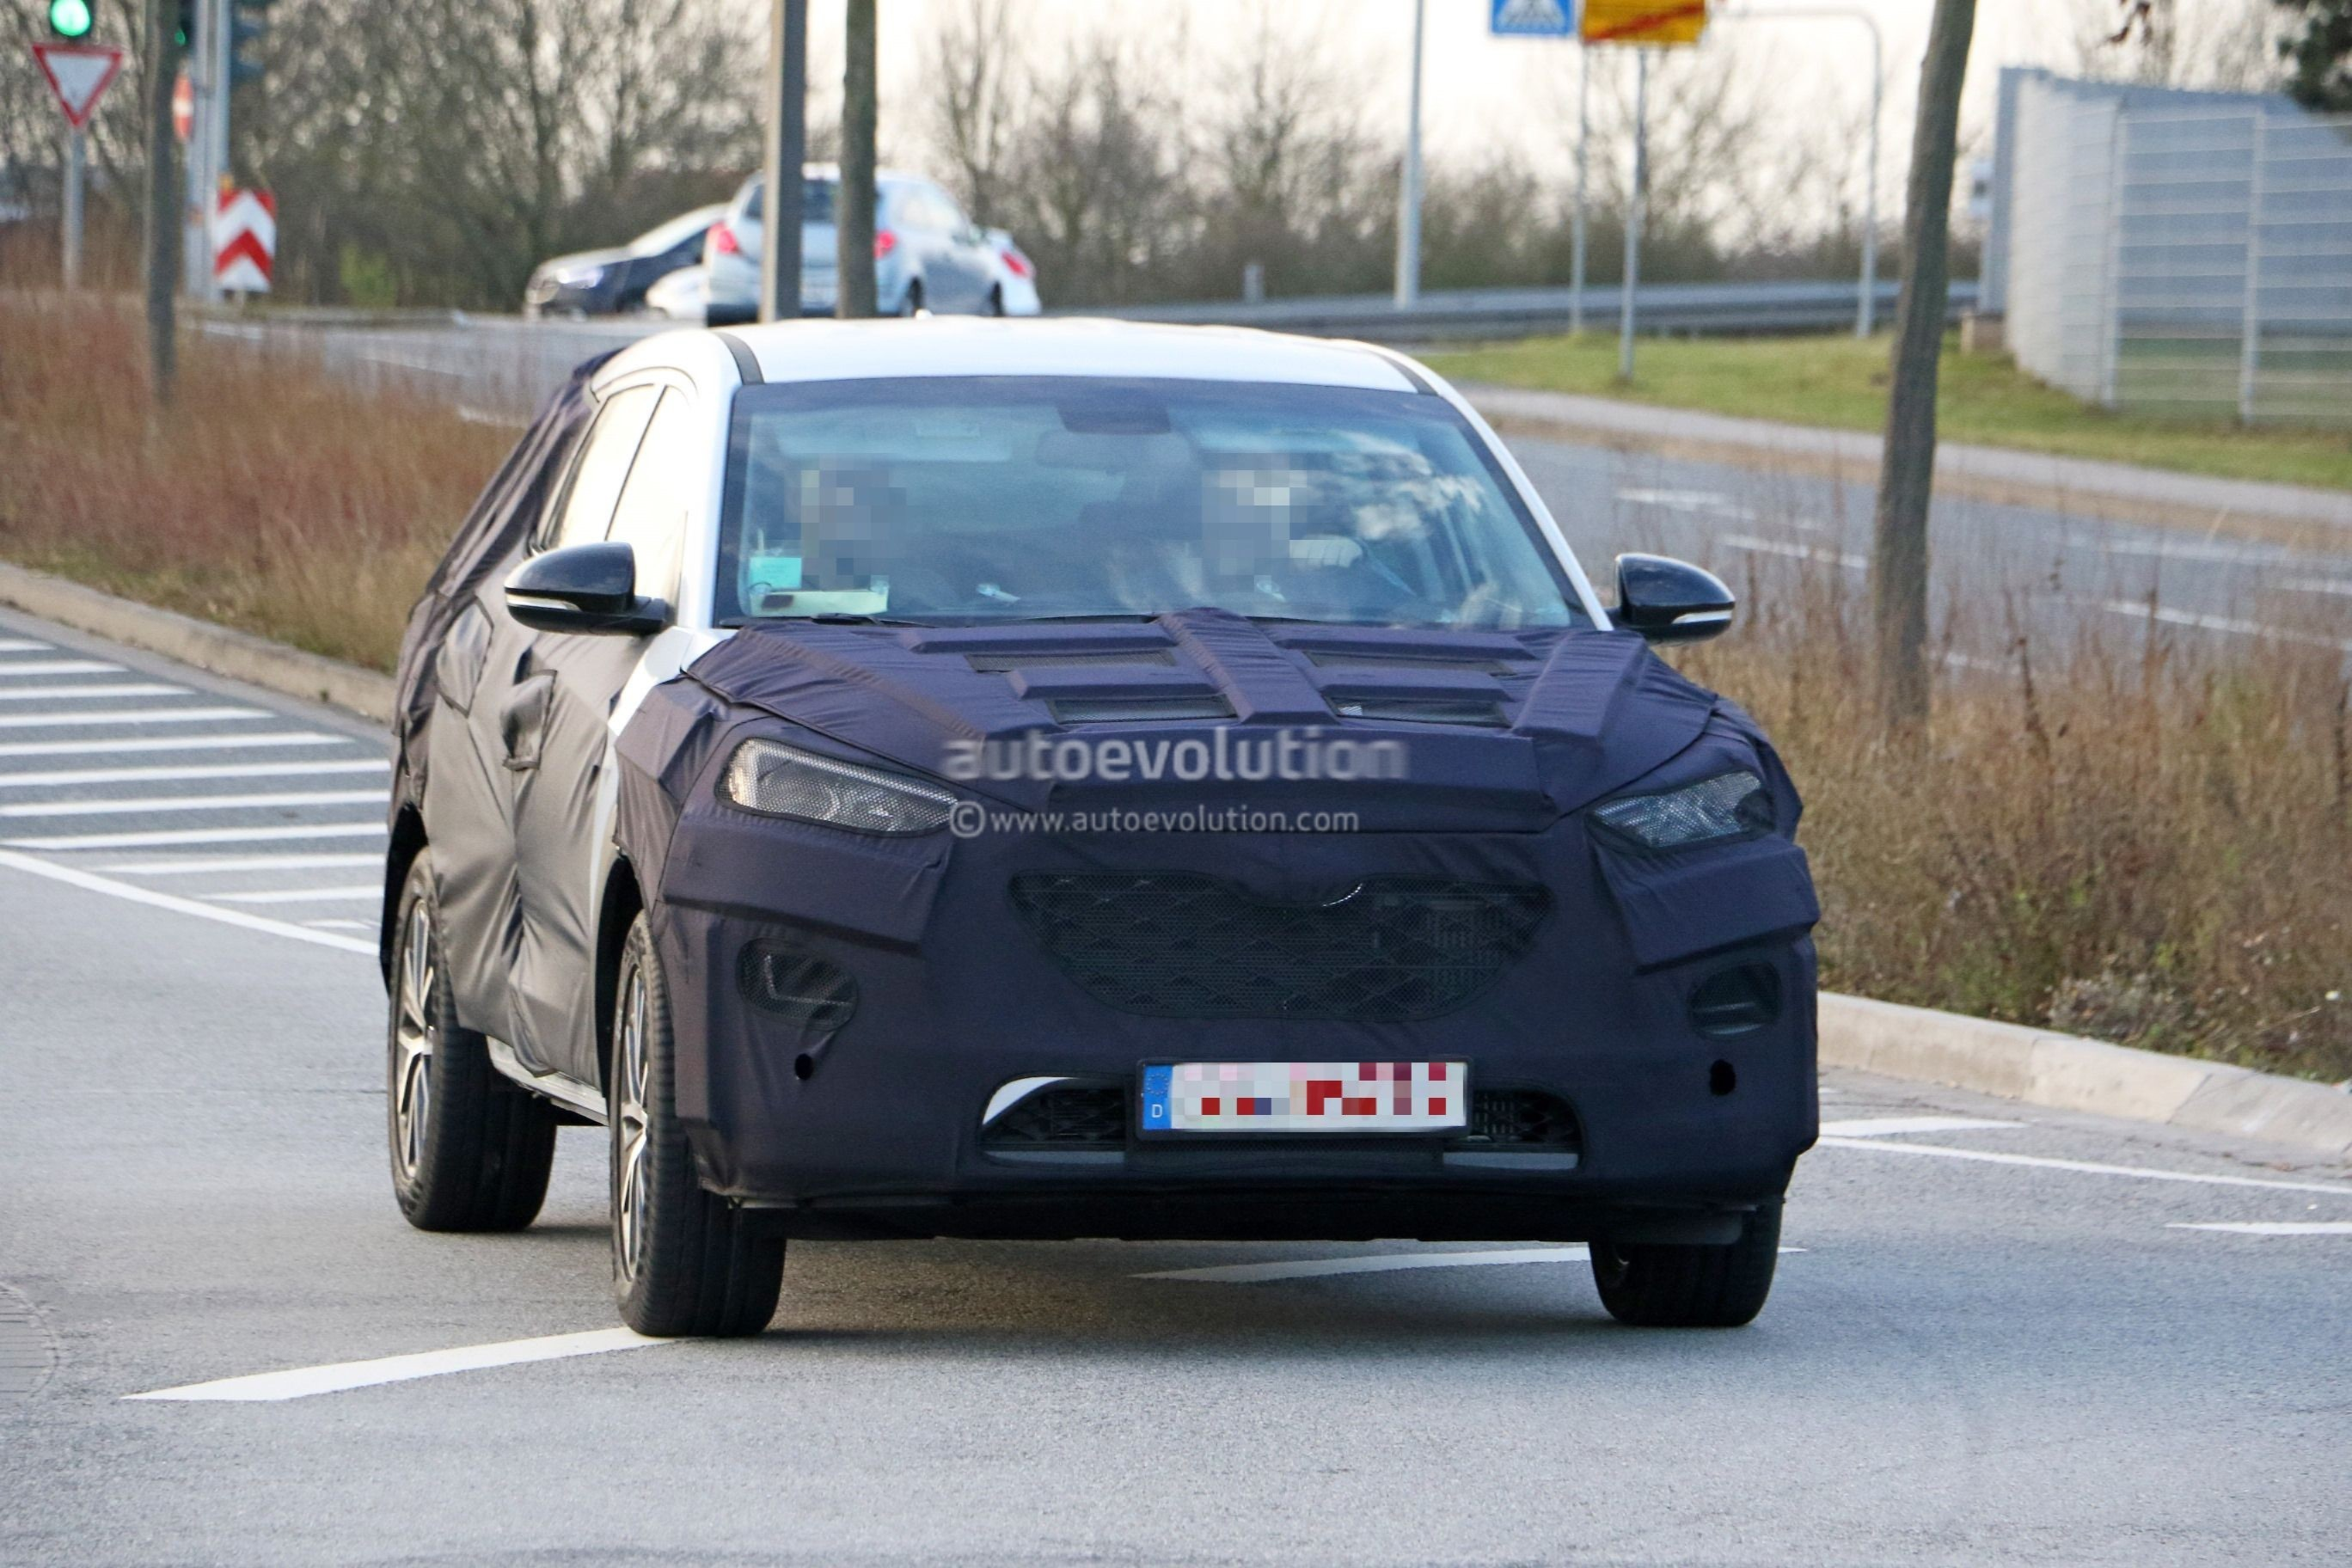 2019 hyundai tucson spied testing in germany autoevolution. Black Bedroom Furniture Sets. Home Design Ideas